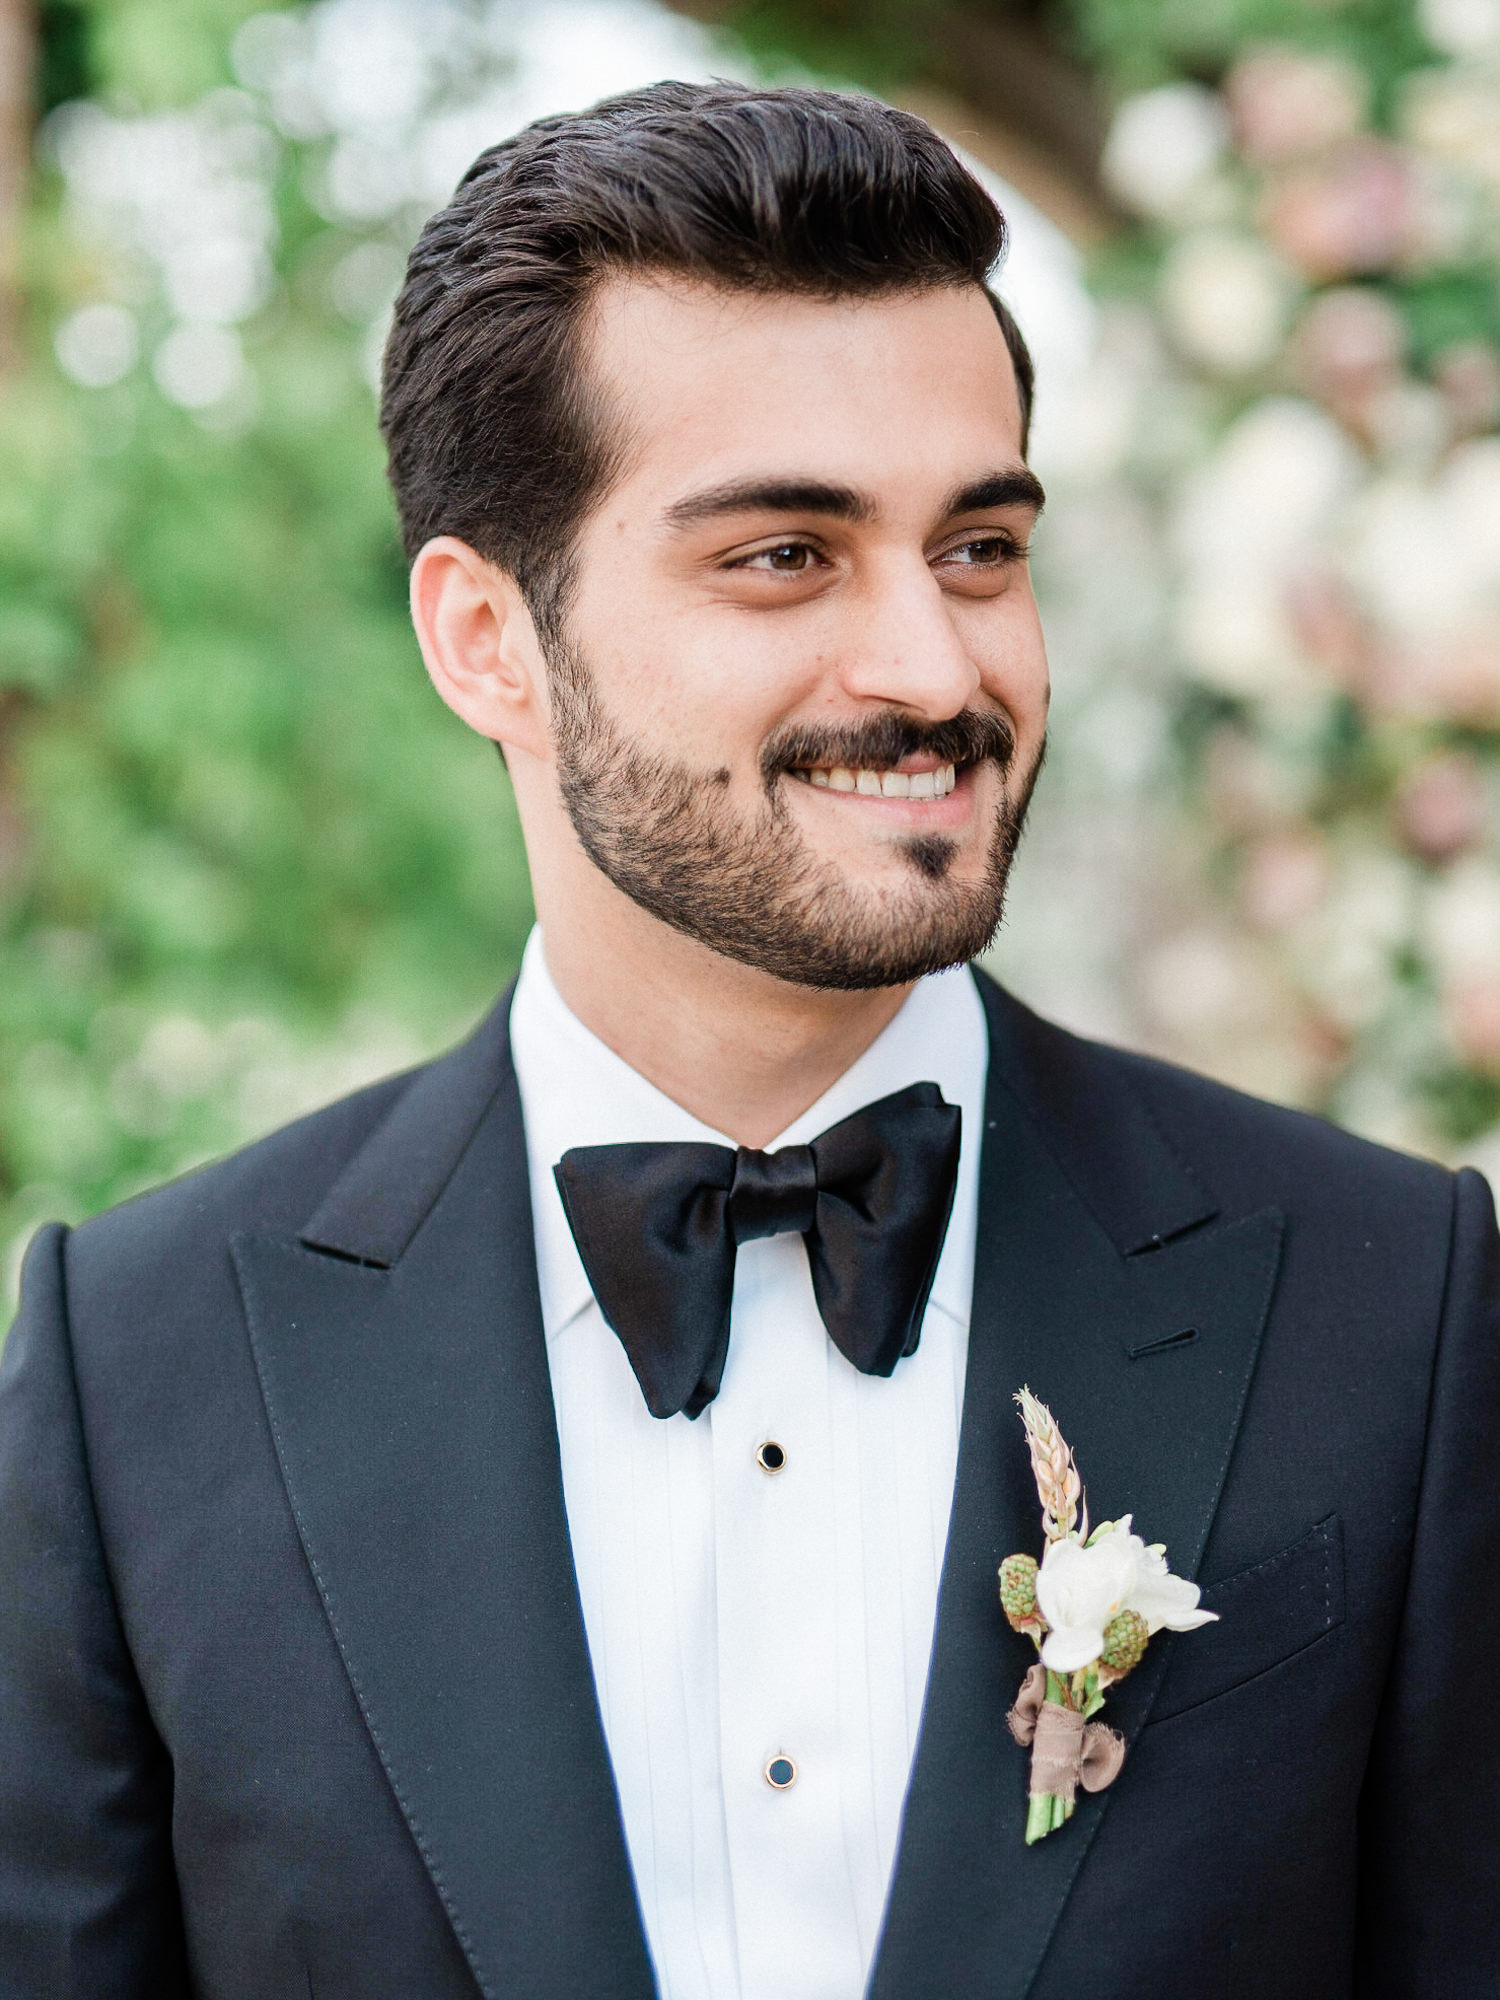 handsome-groom-black-tuxedo-bow-tie-worlds-best-wedding-photos-gianluca-adiovaso-italy-wedding-photographers